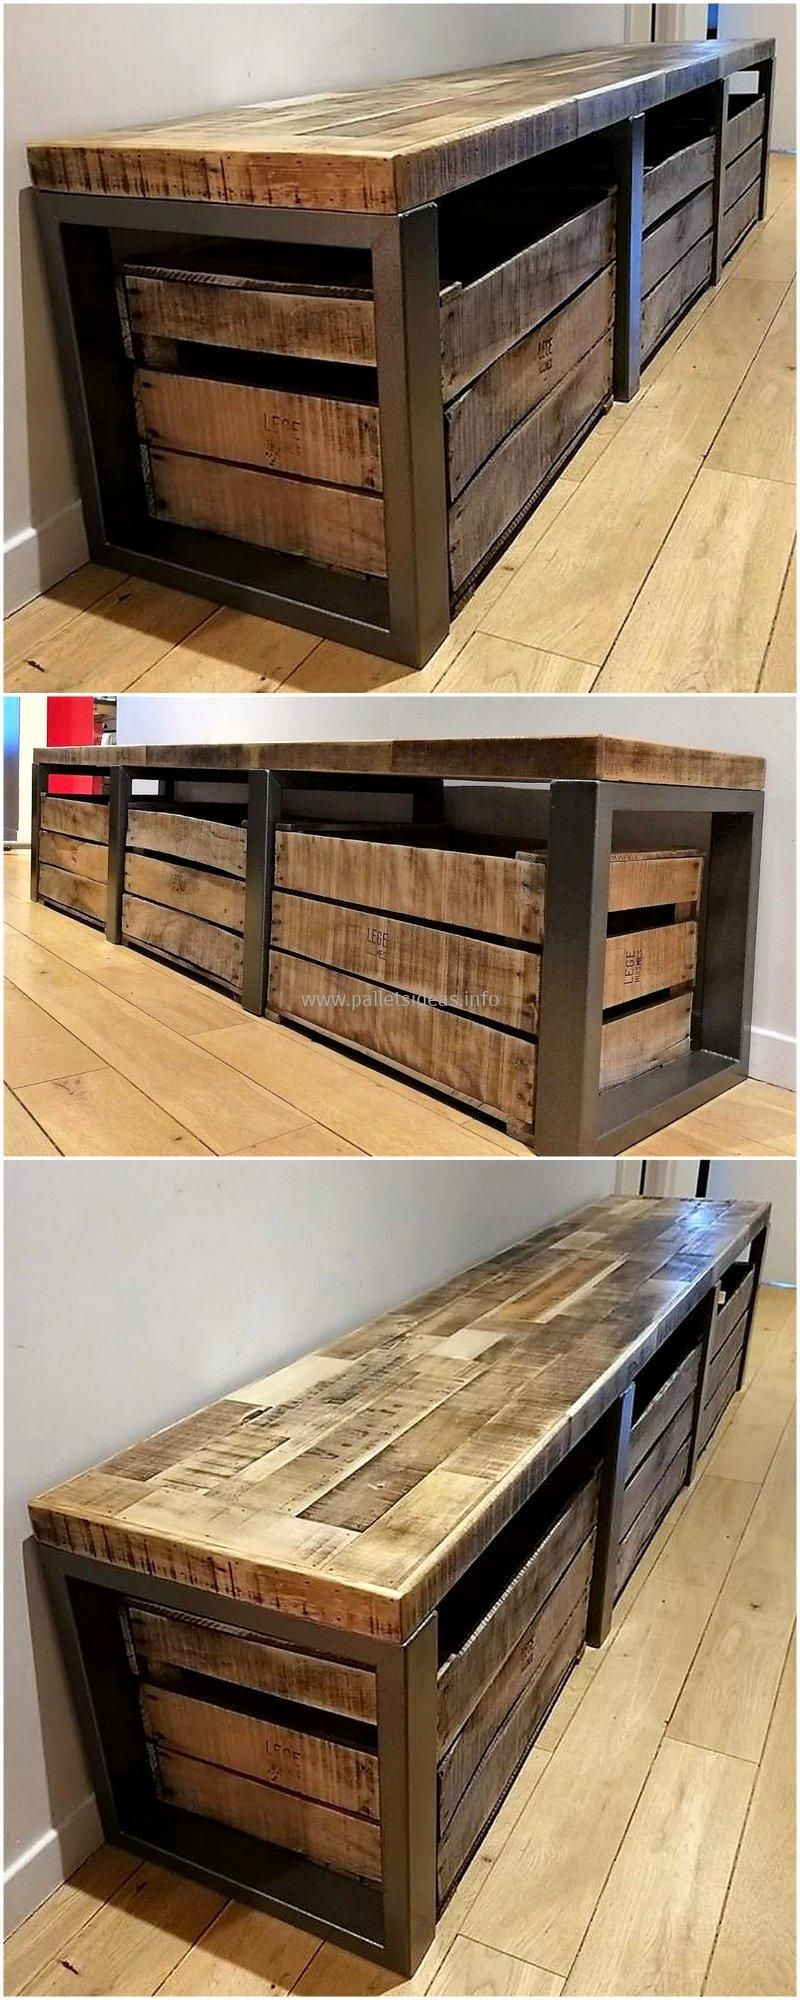 Things That Can Be Made With Used Wooden Pallets Diy Storage Bench Crate Bench Bench With Shoe Storage